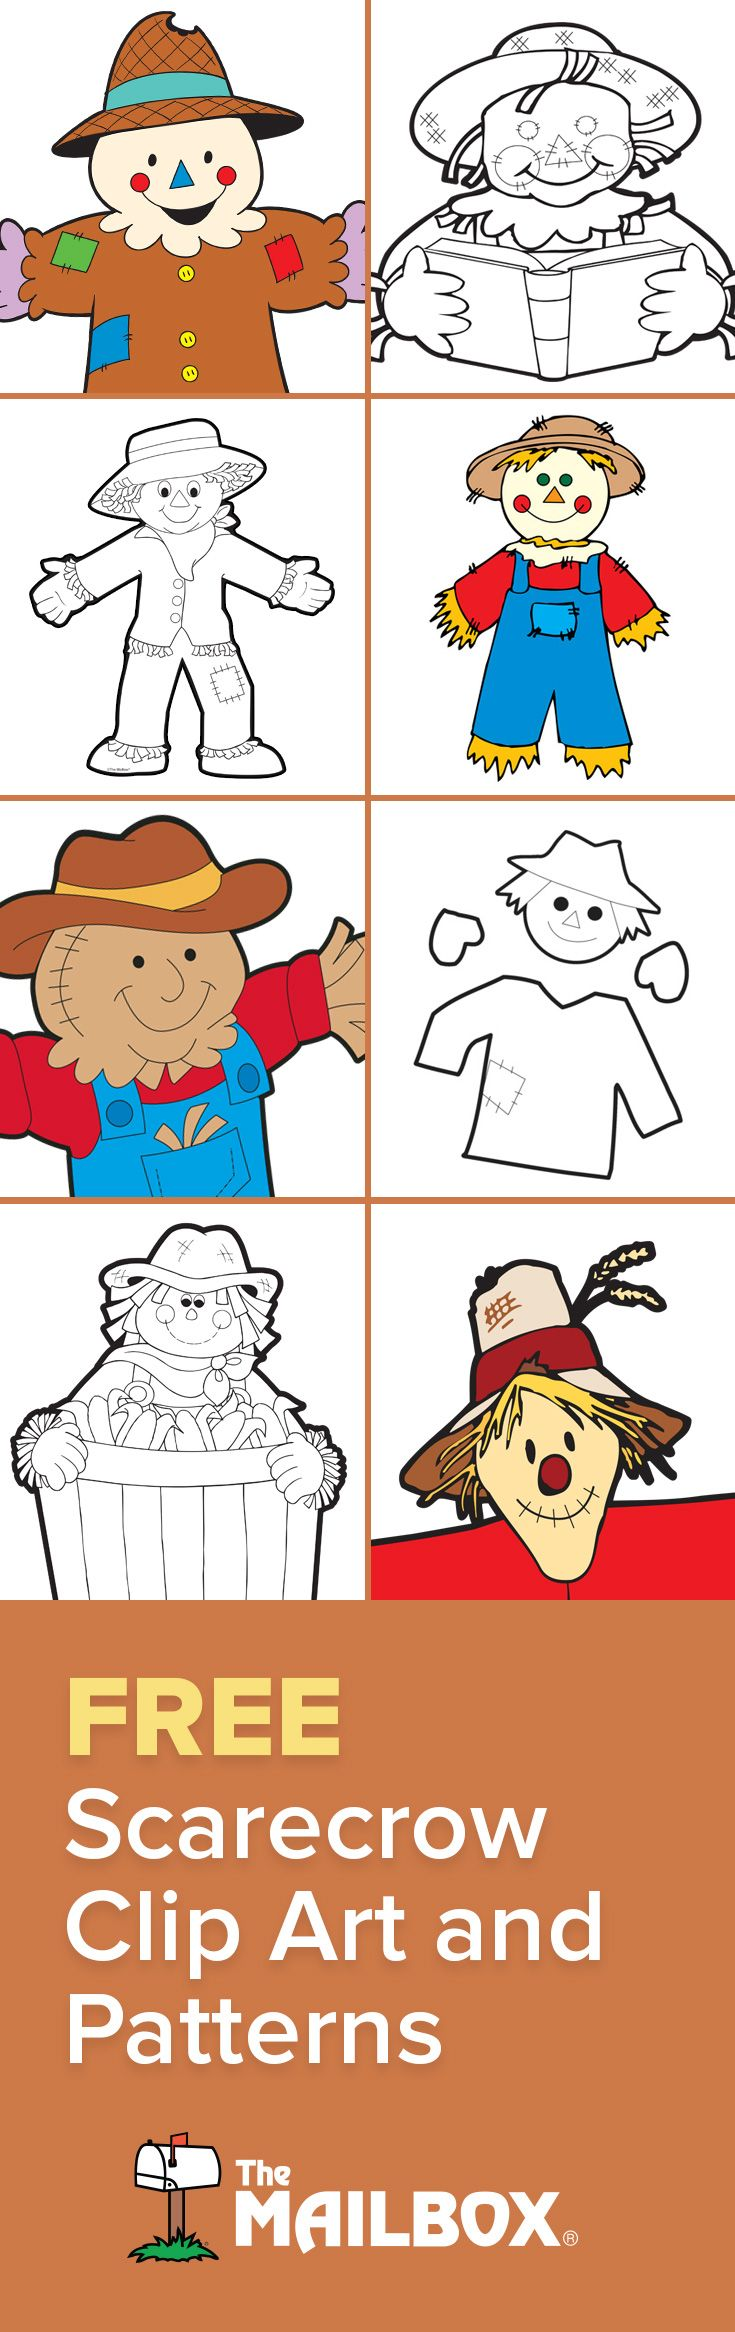 Worksheets Mailbox Worksheets 269 best fall images on pinterest the mailbox classroom ideas scarecrows patterns clipart worksheets and crafts oh bulletin board ideas